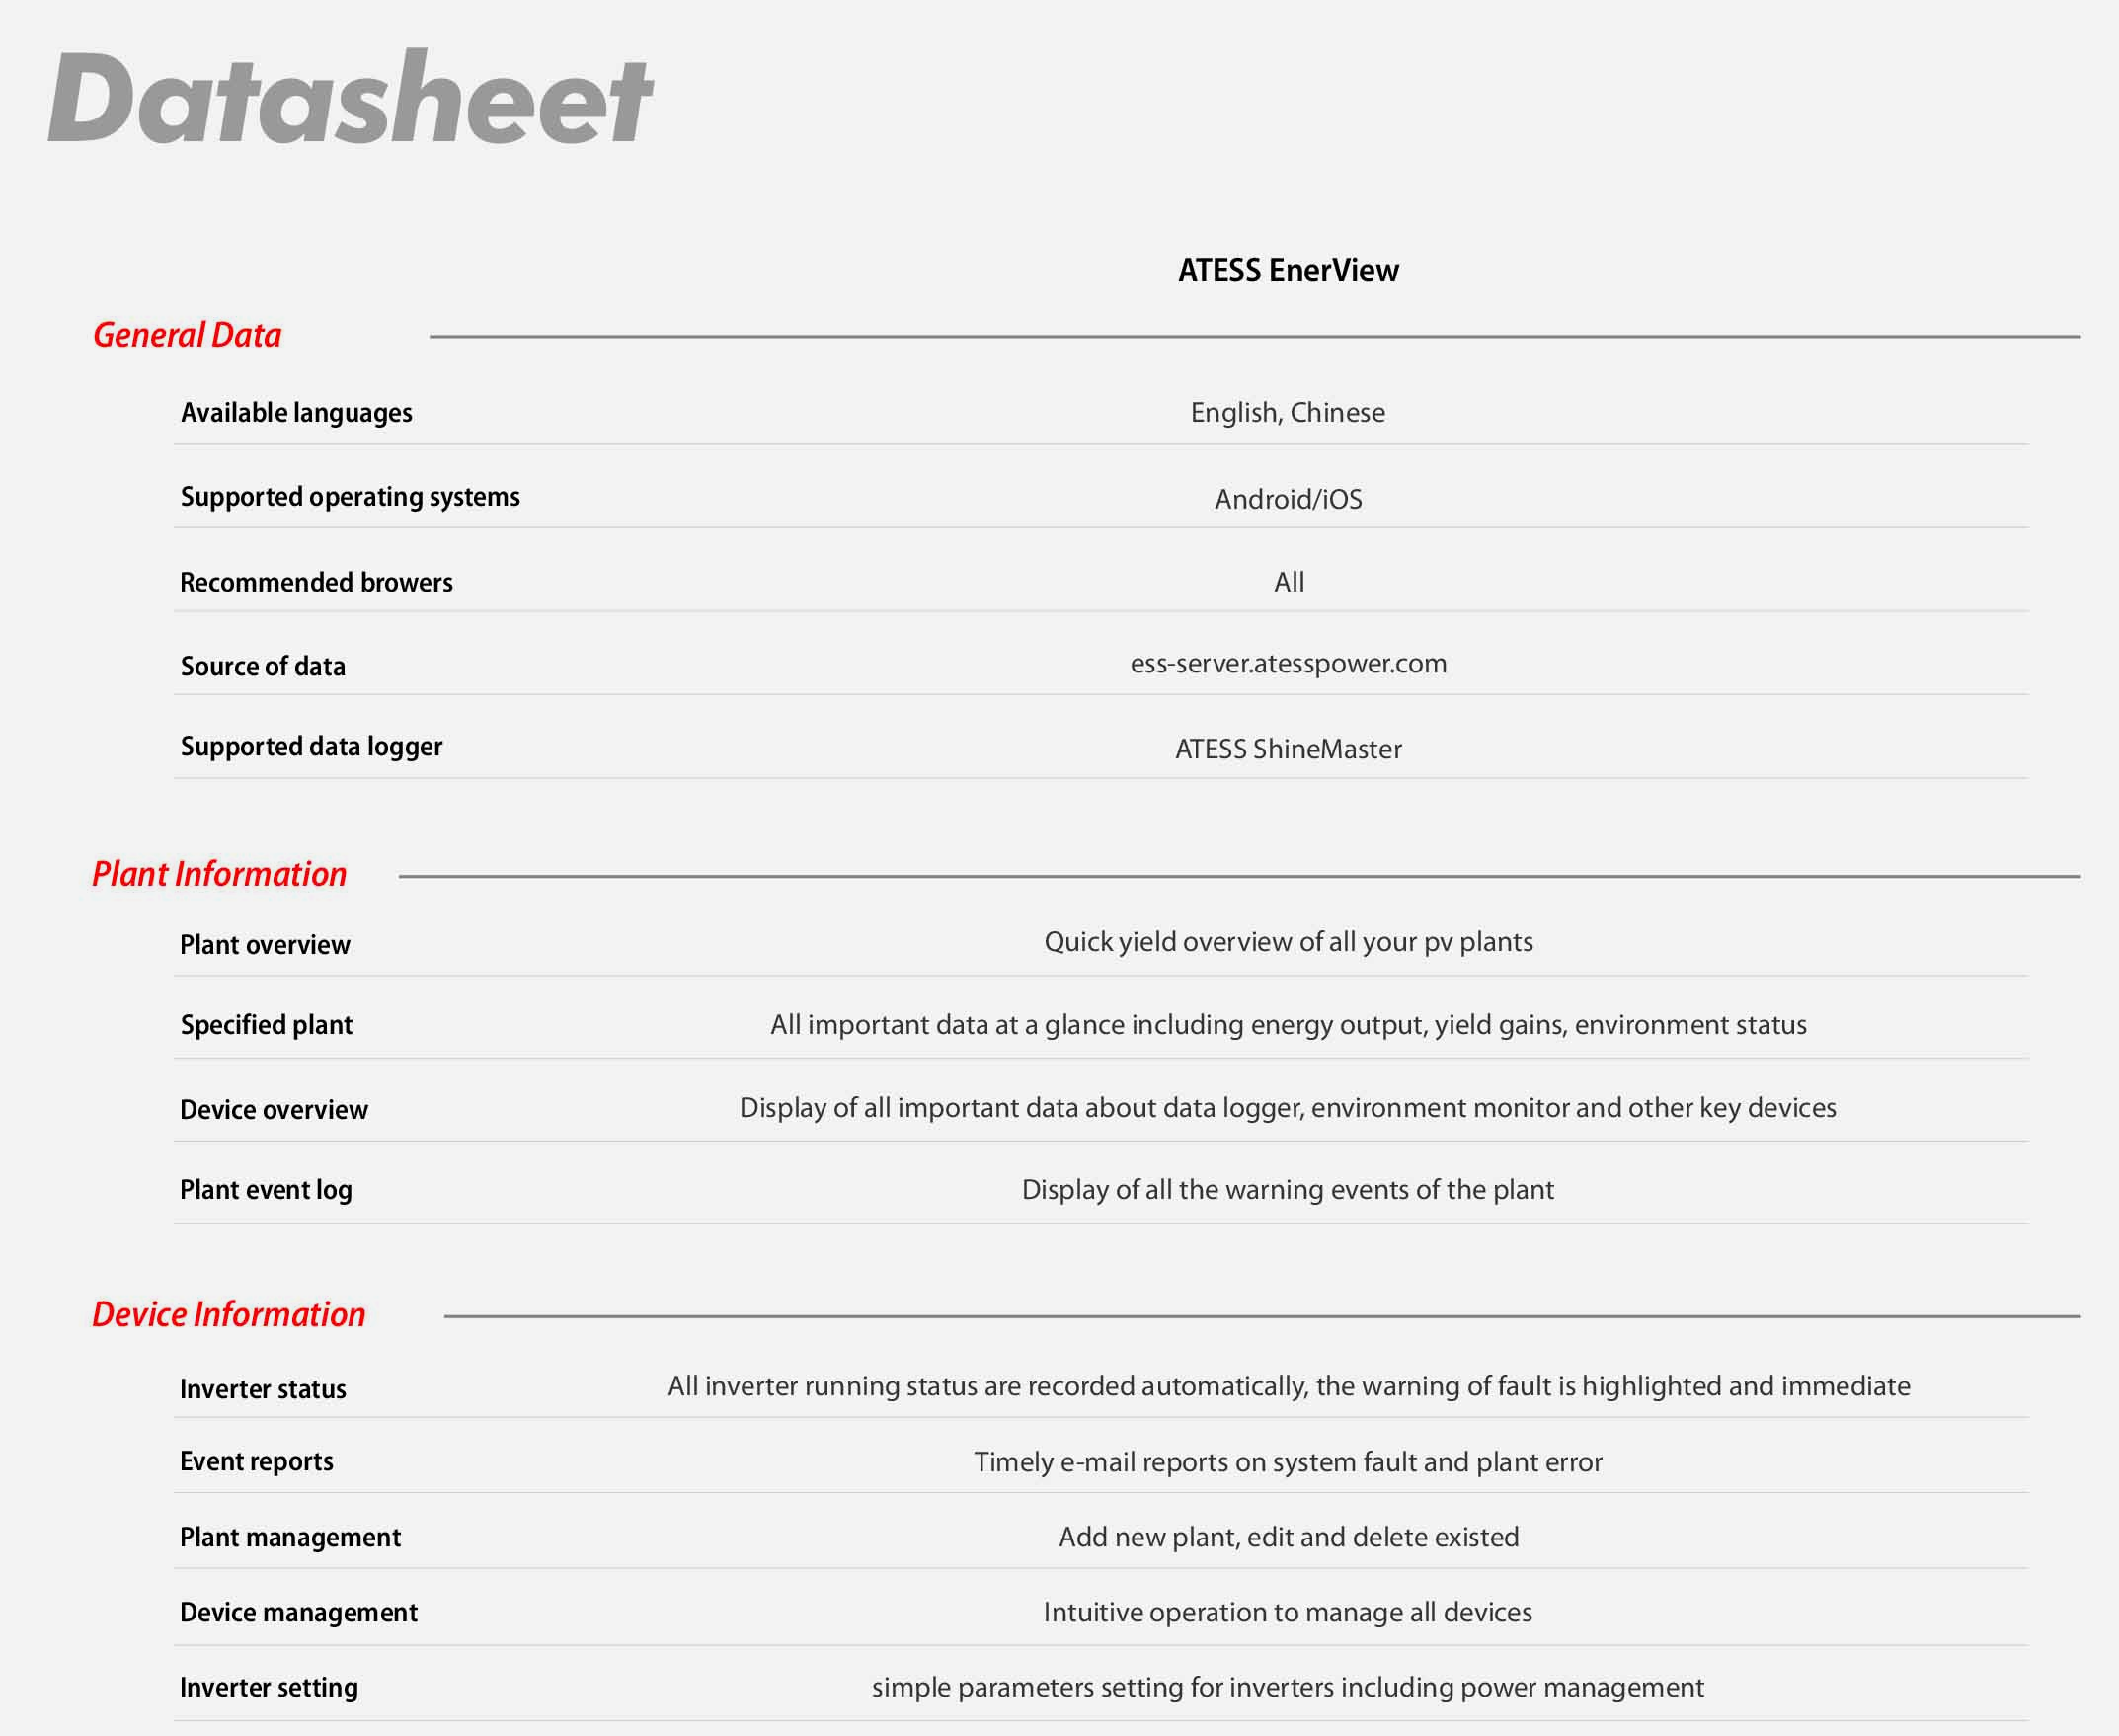 ATESS EnerView Datasheet-2.jpg